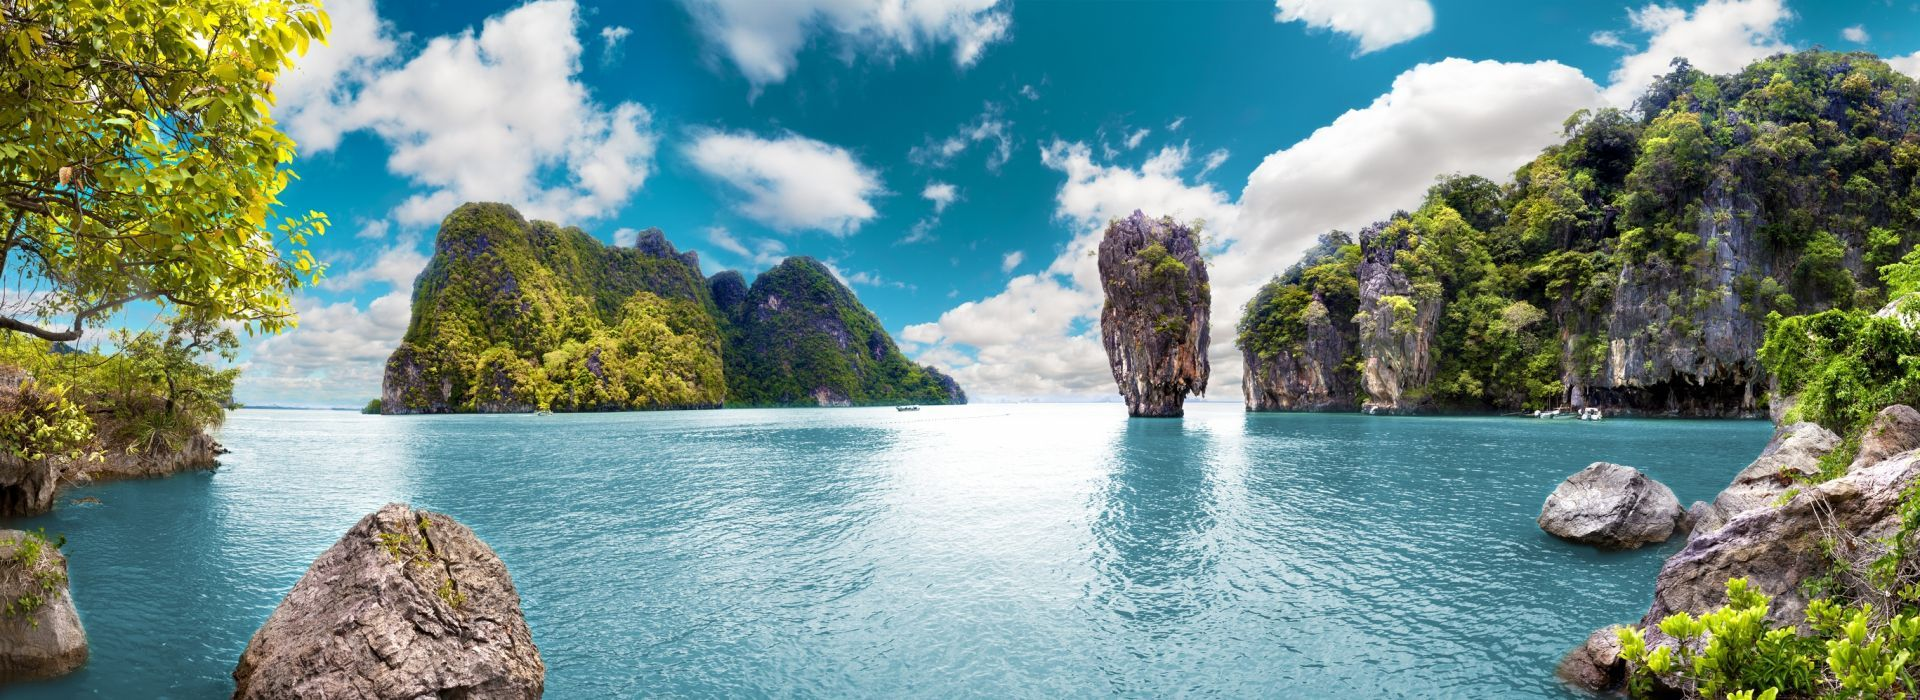 Wildlife, landscapes and nature Tours in Krabi